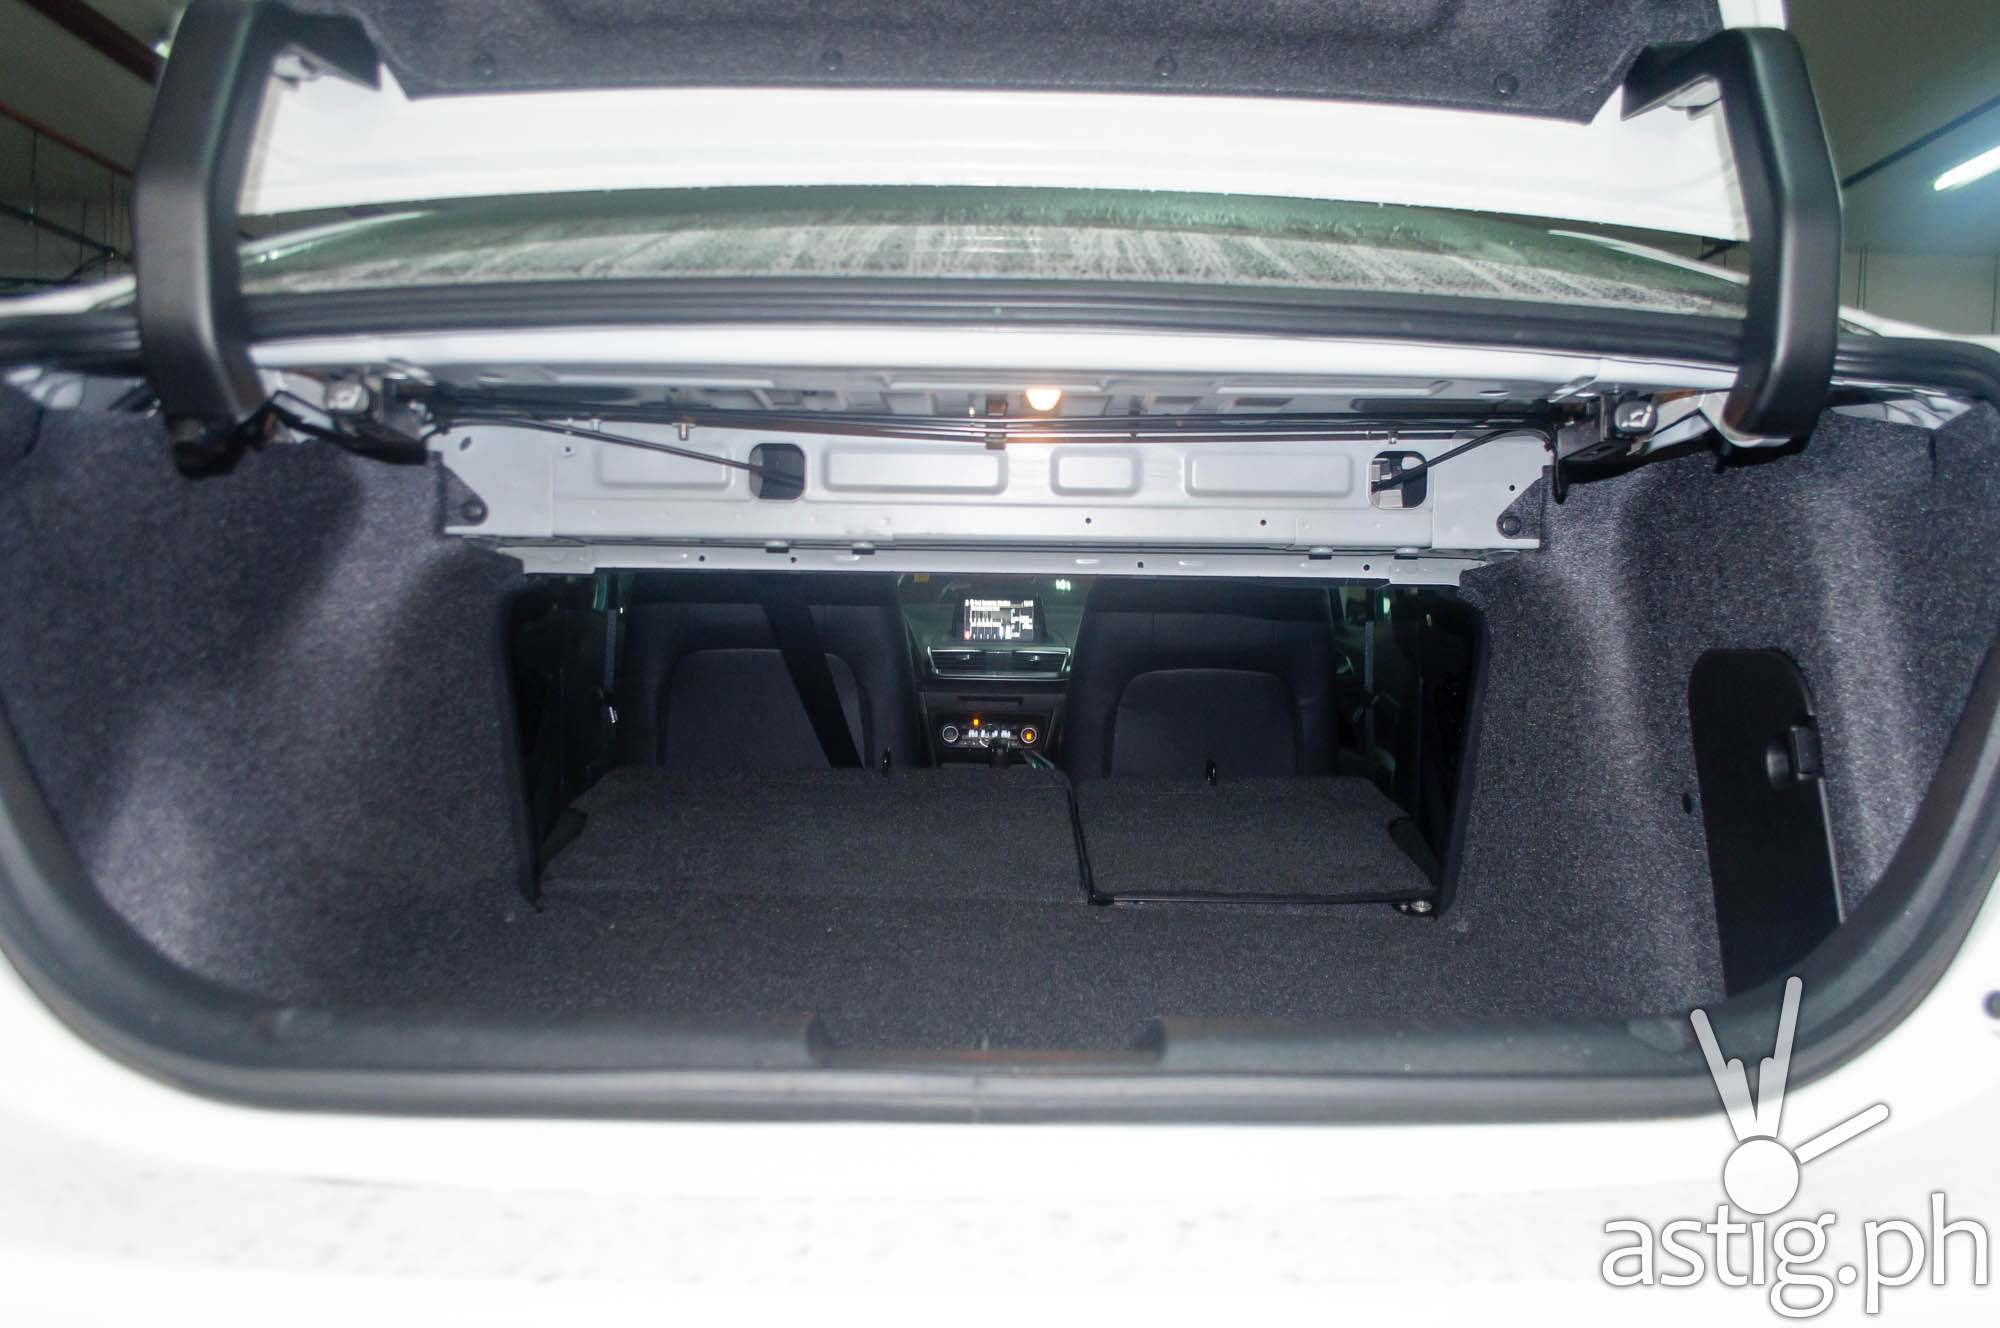 The rear seats on the Mazda3 Sedan can be folded to extend trunk storage